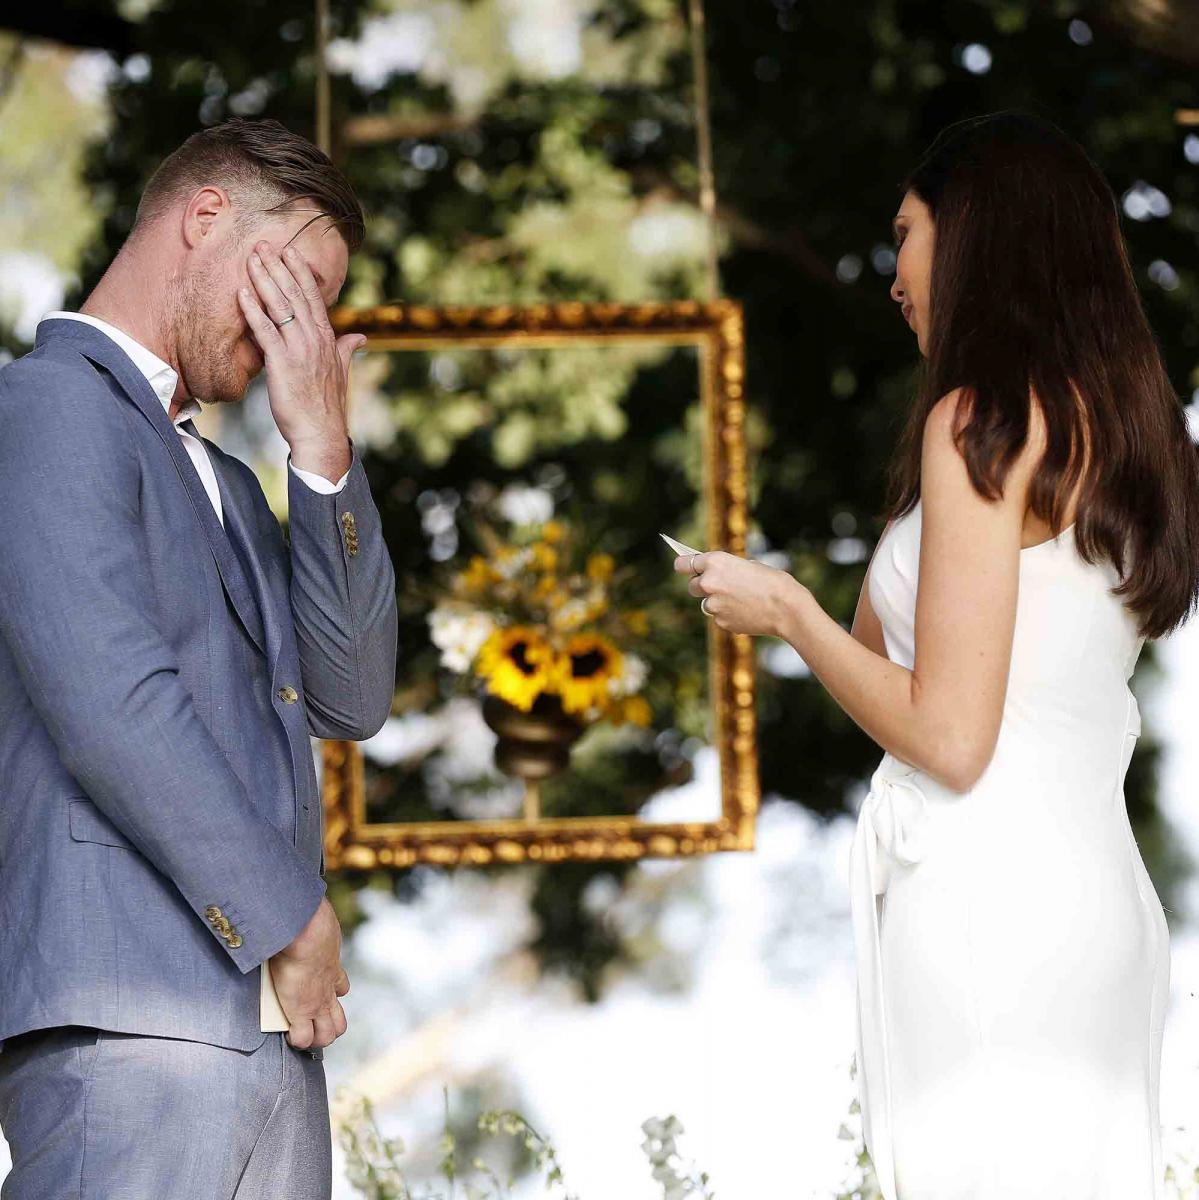 Tracey from MAFS reveals her new relationship